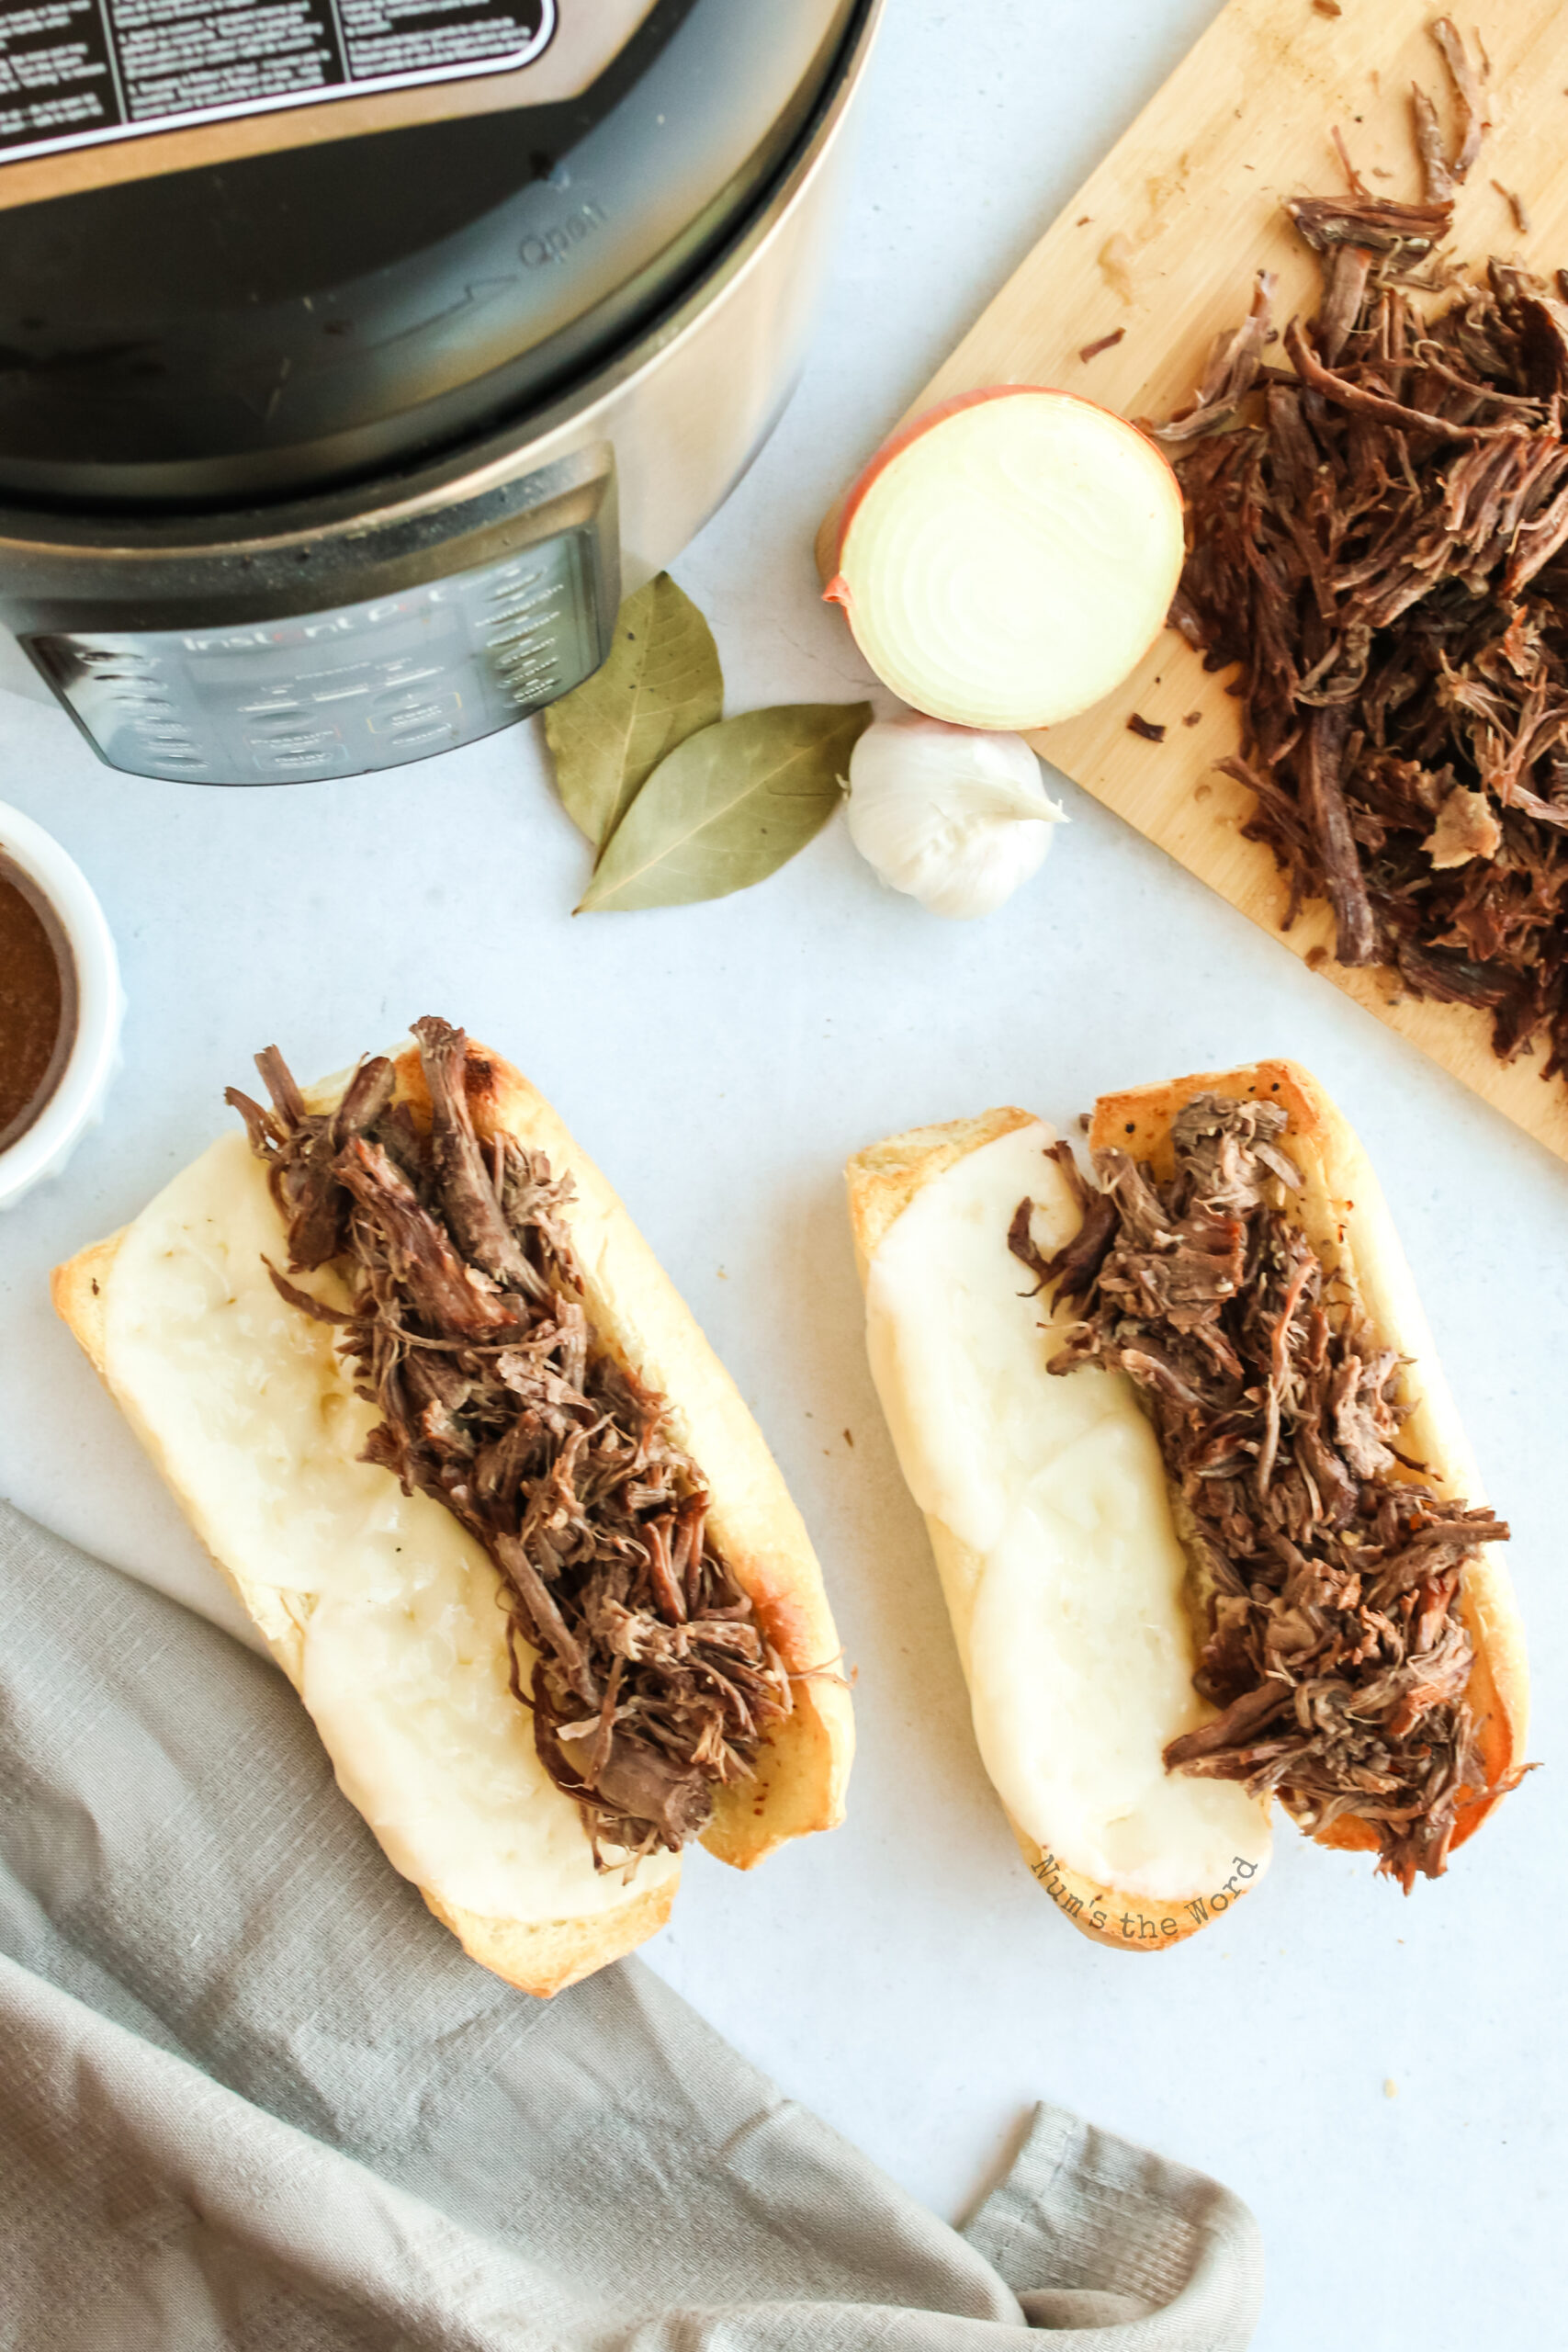 shredded beef place on sandwich buns